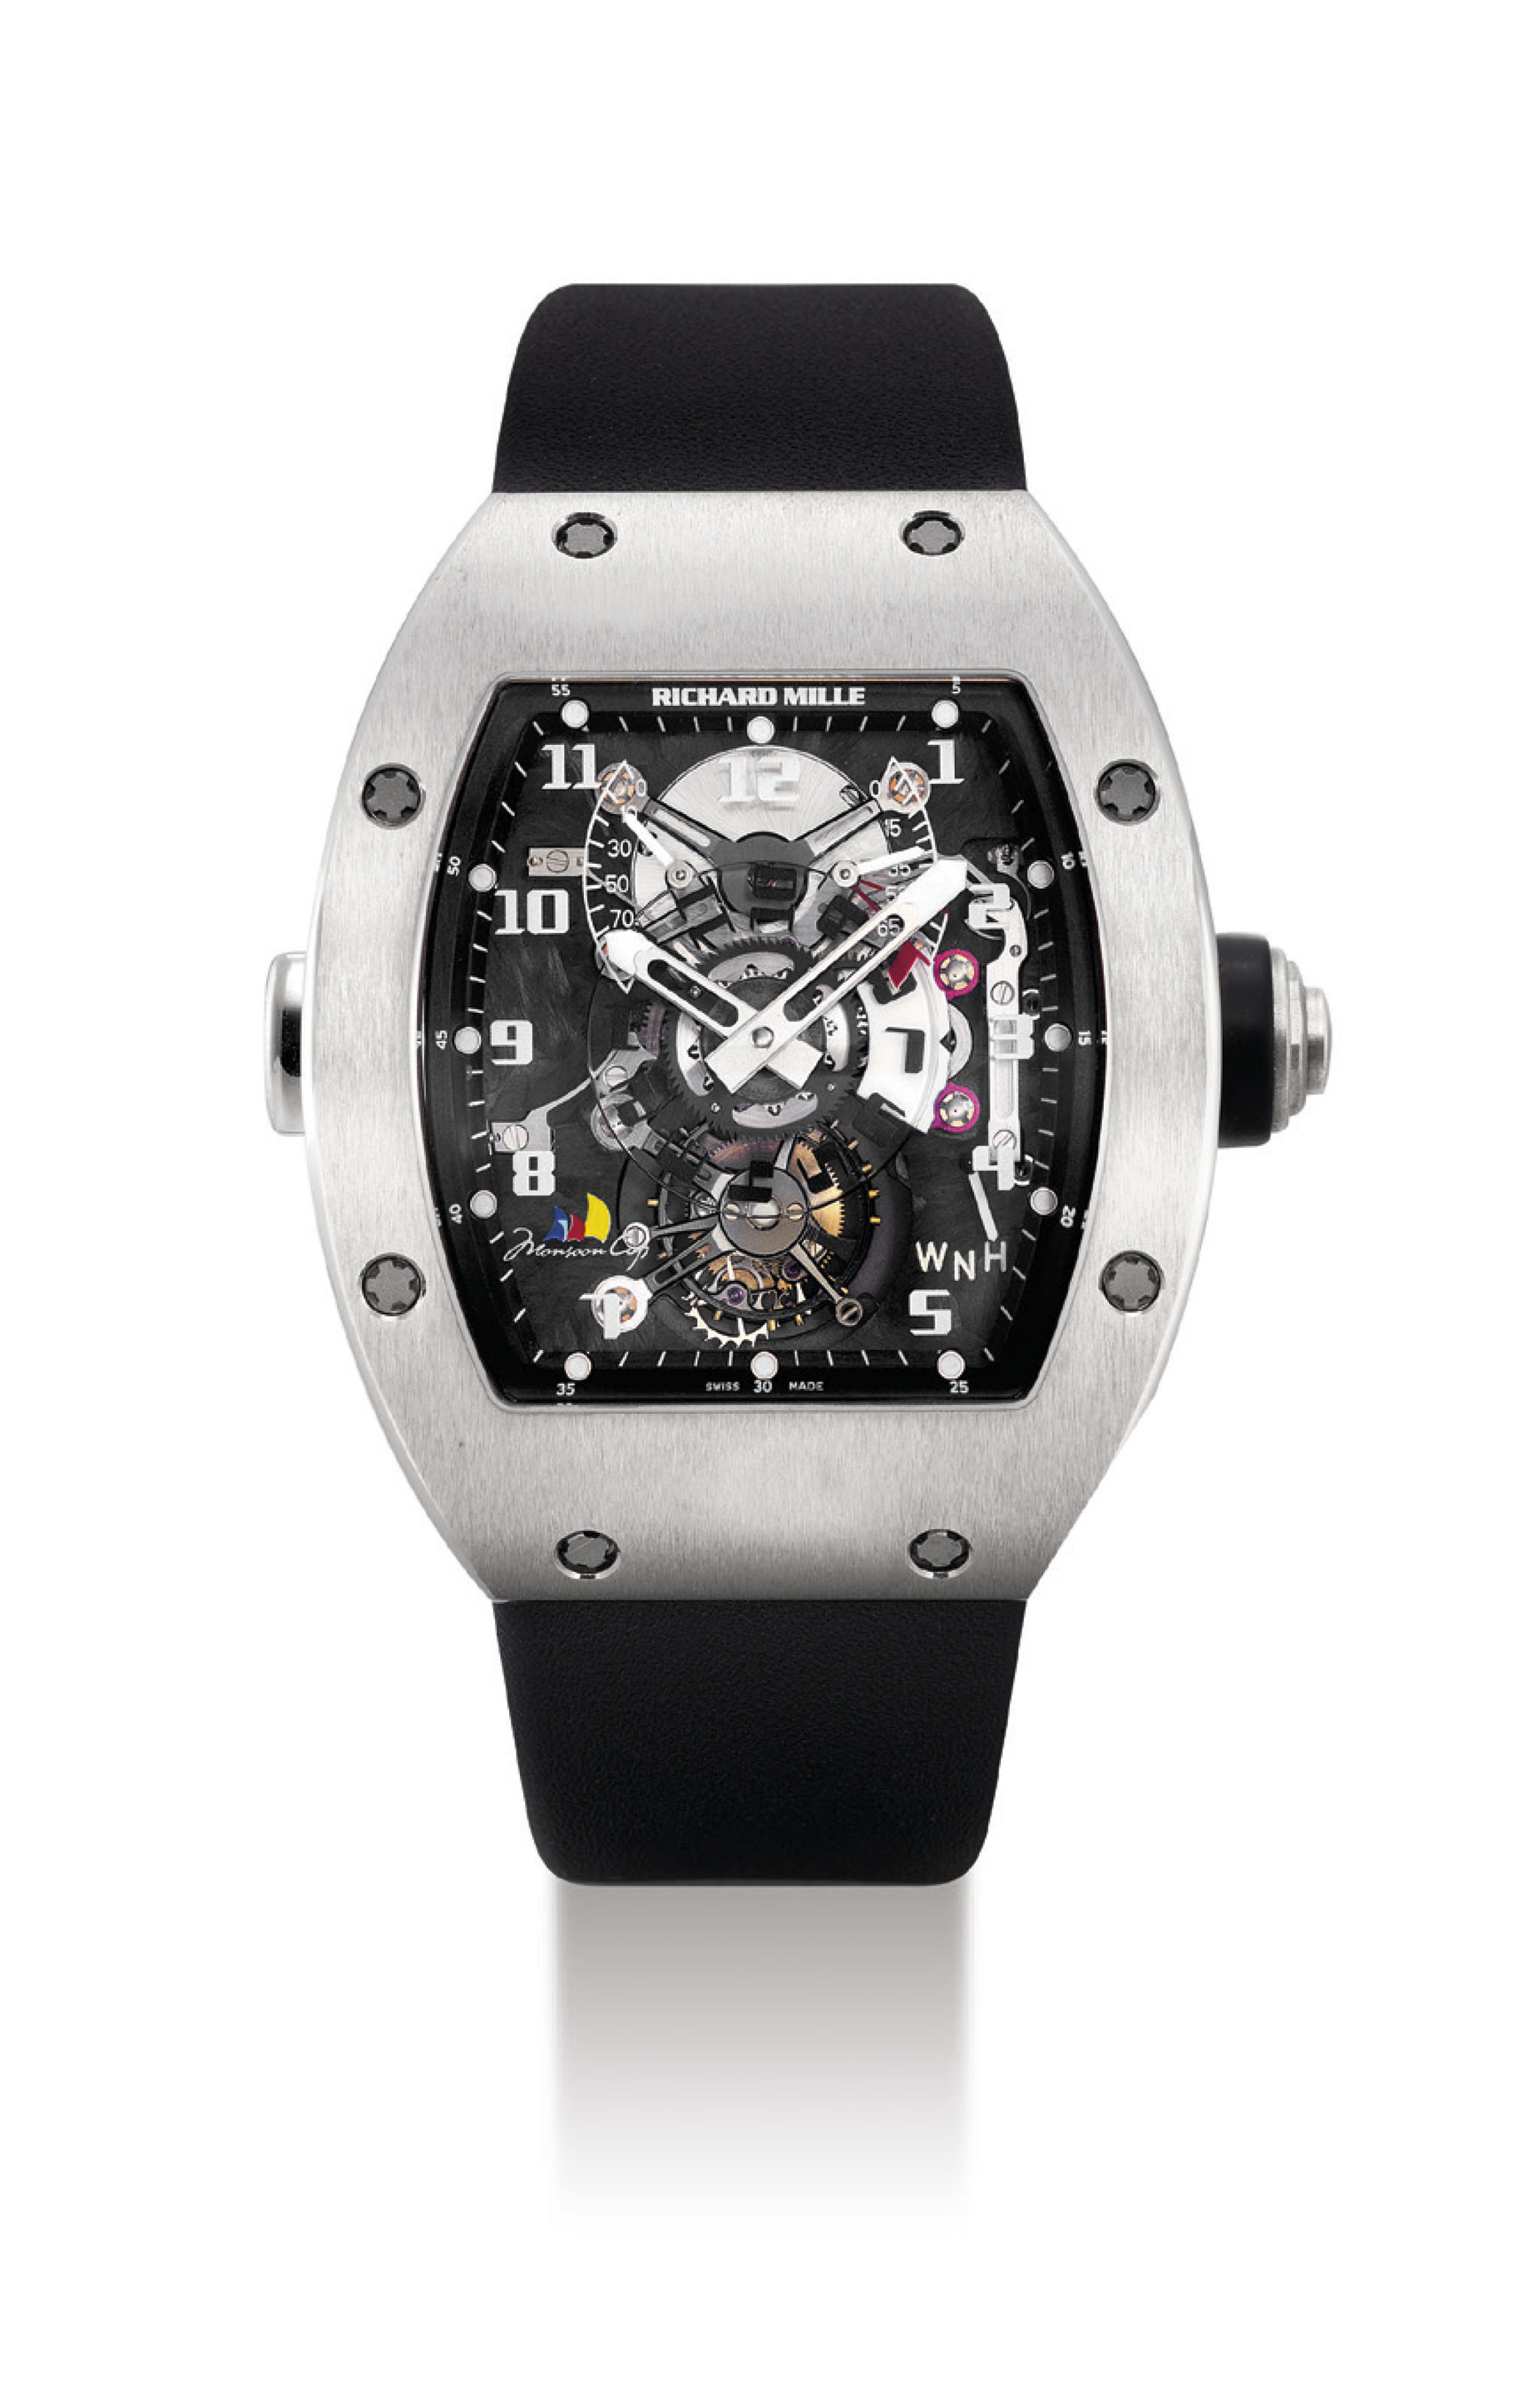 RICHARD MILLE. A FINE AND RARE 18K WHITE GOLD LIMITED EDITION TONNEAU-SHAPED SEMI-SKELETONISED DUAL TIME TOURBILLON WRISTWATCH WITH POWER RESERVE AND TORQUE INDICATORS, MADE FOR THE MONSOON CUP